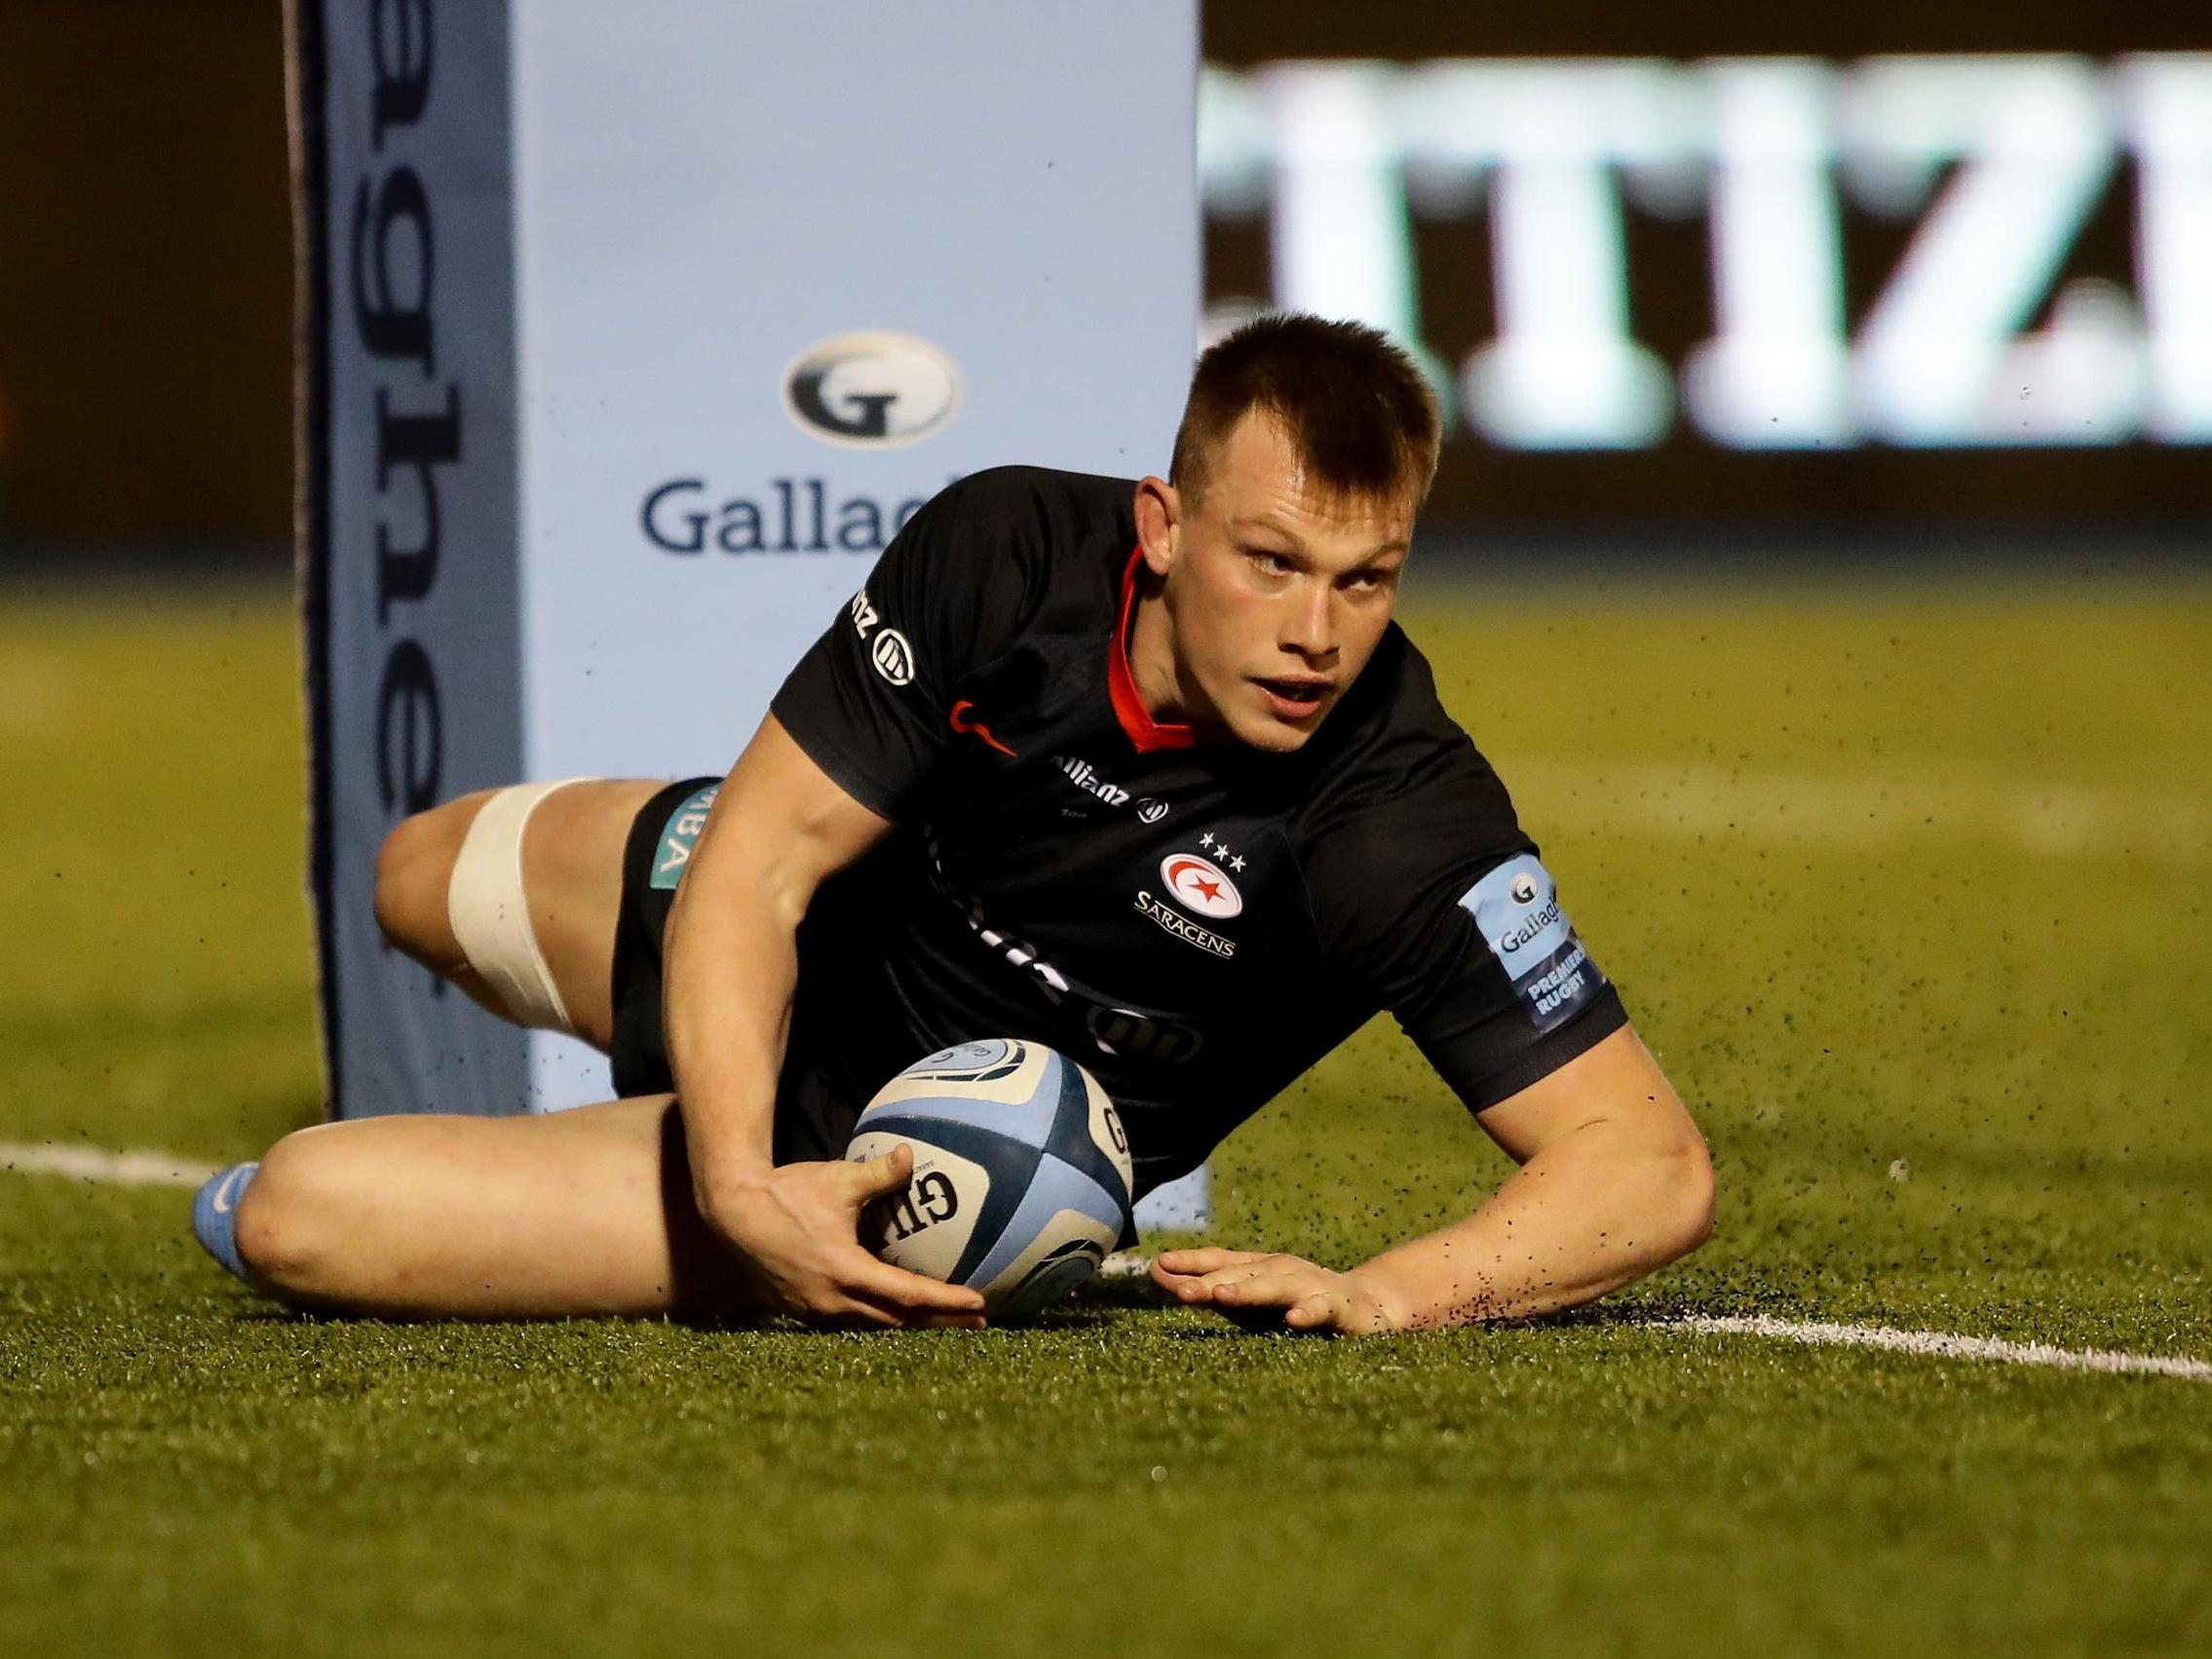 Saracens vs Bristol Bears LIVE: Result and reaction from Premiership match today